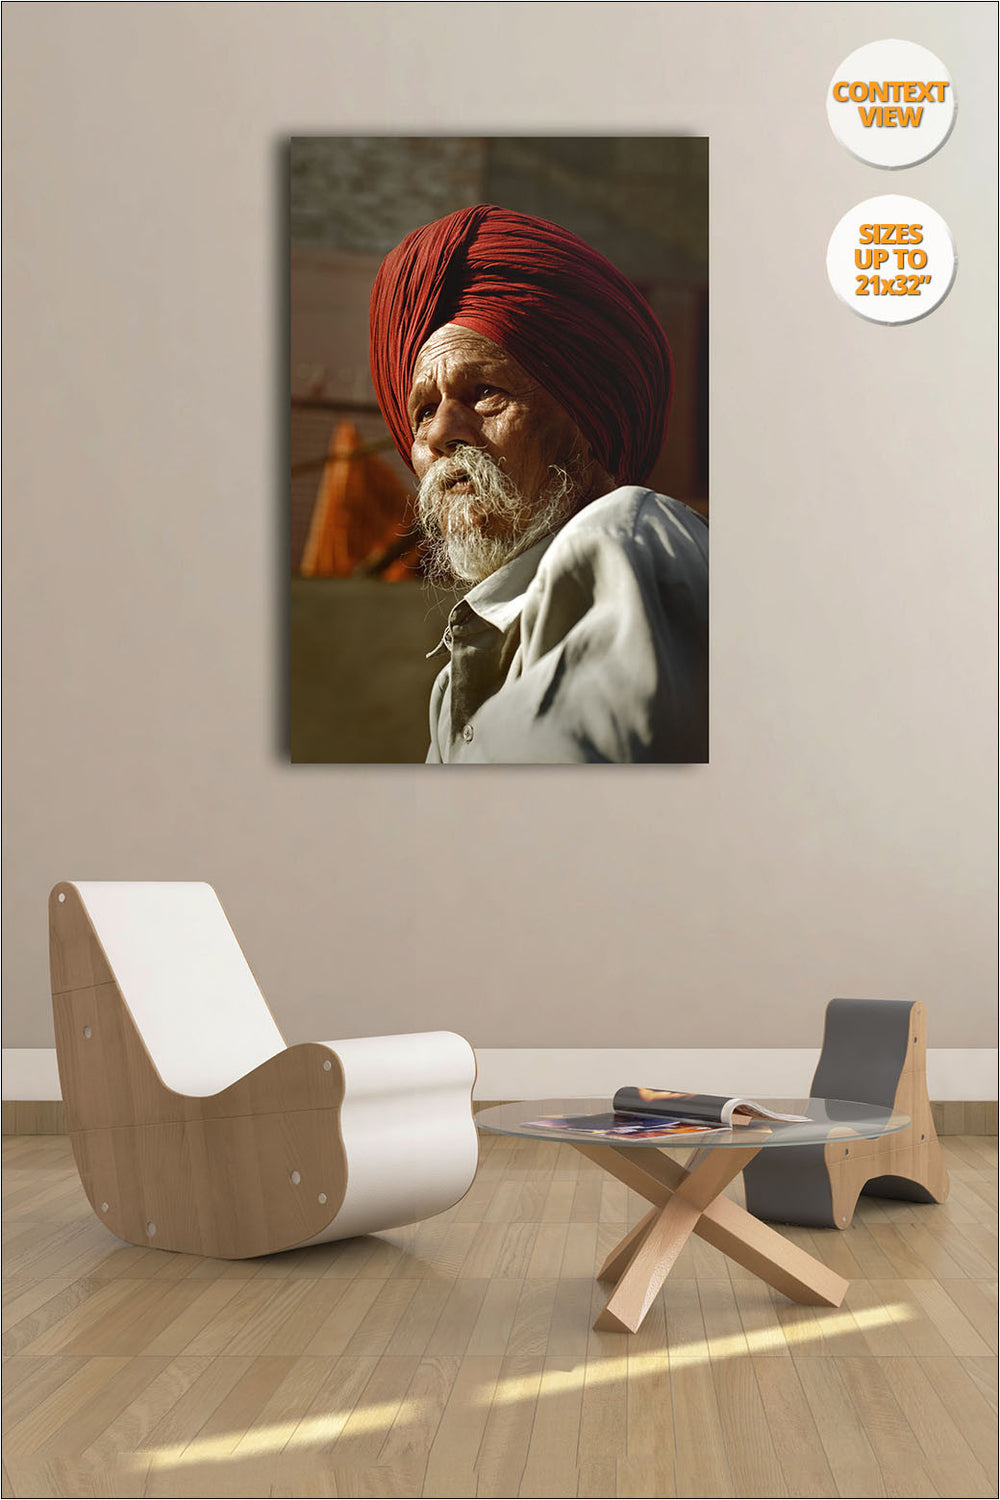 Portrait of a Sikh, Chandigarh, India. | View of the Print hanged in Living Room.